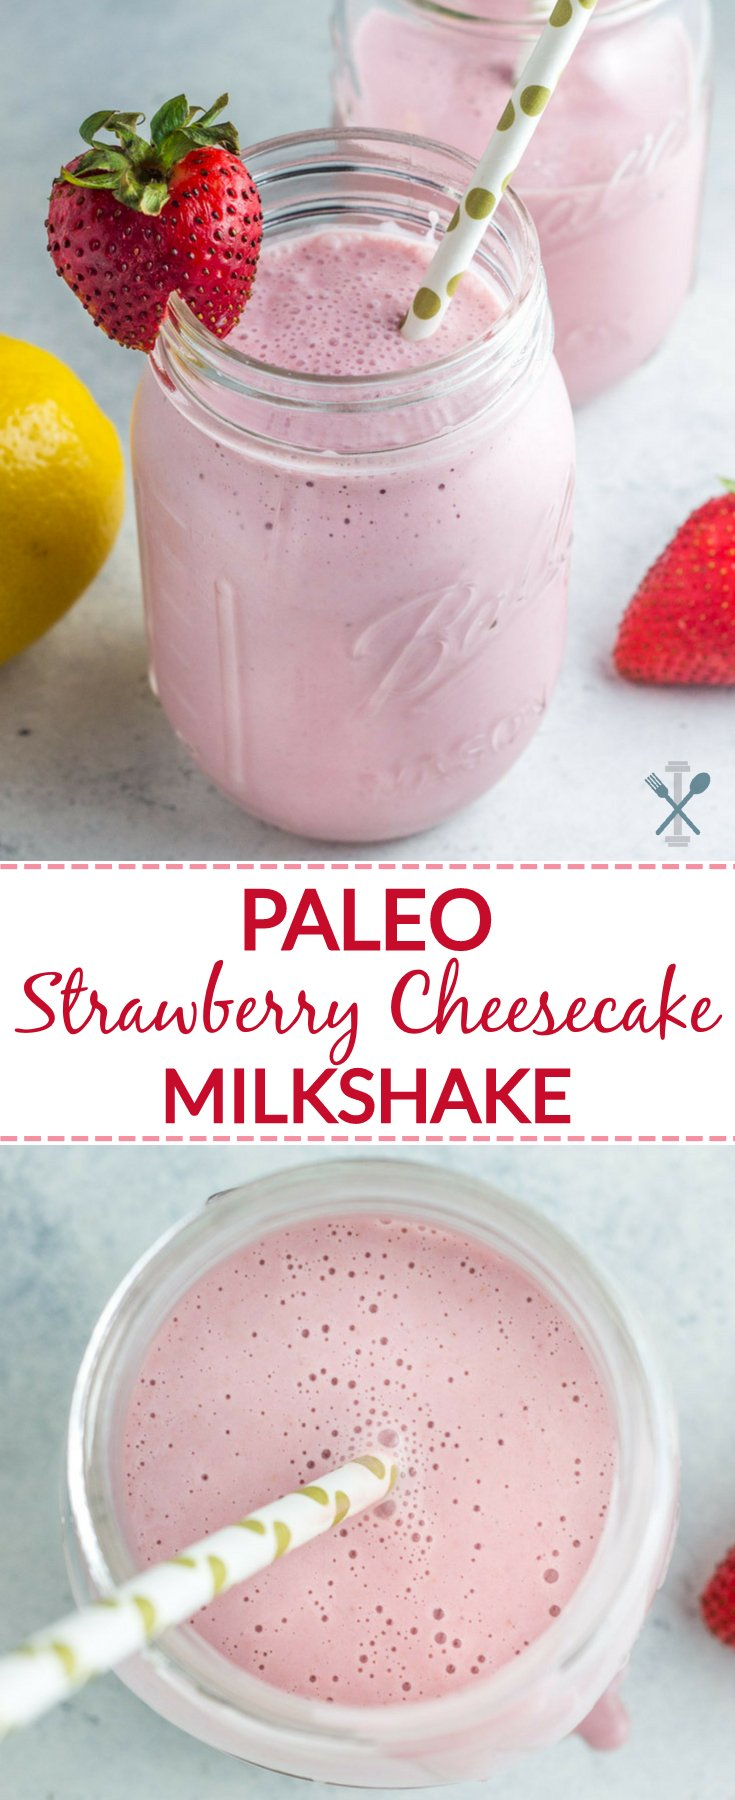 A dairy free, paleo 'milkshake' that looks and tastes decadent, but is actually healthy! Simple ingredients, naturally sweetened, easy to make. This paleo strawberry cheesecake milkshake is a perfect cool treat.